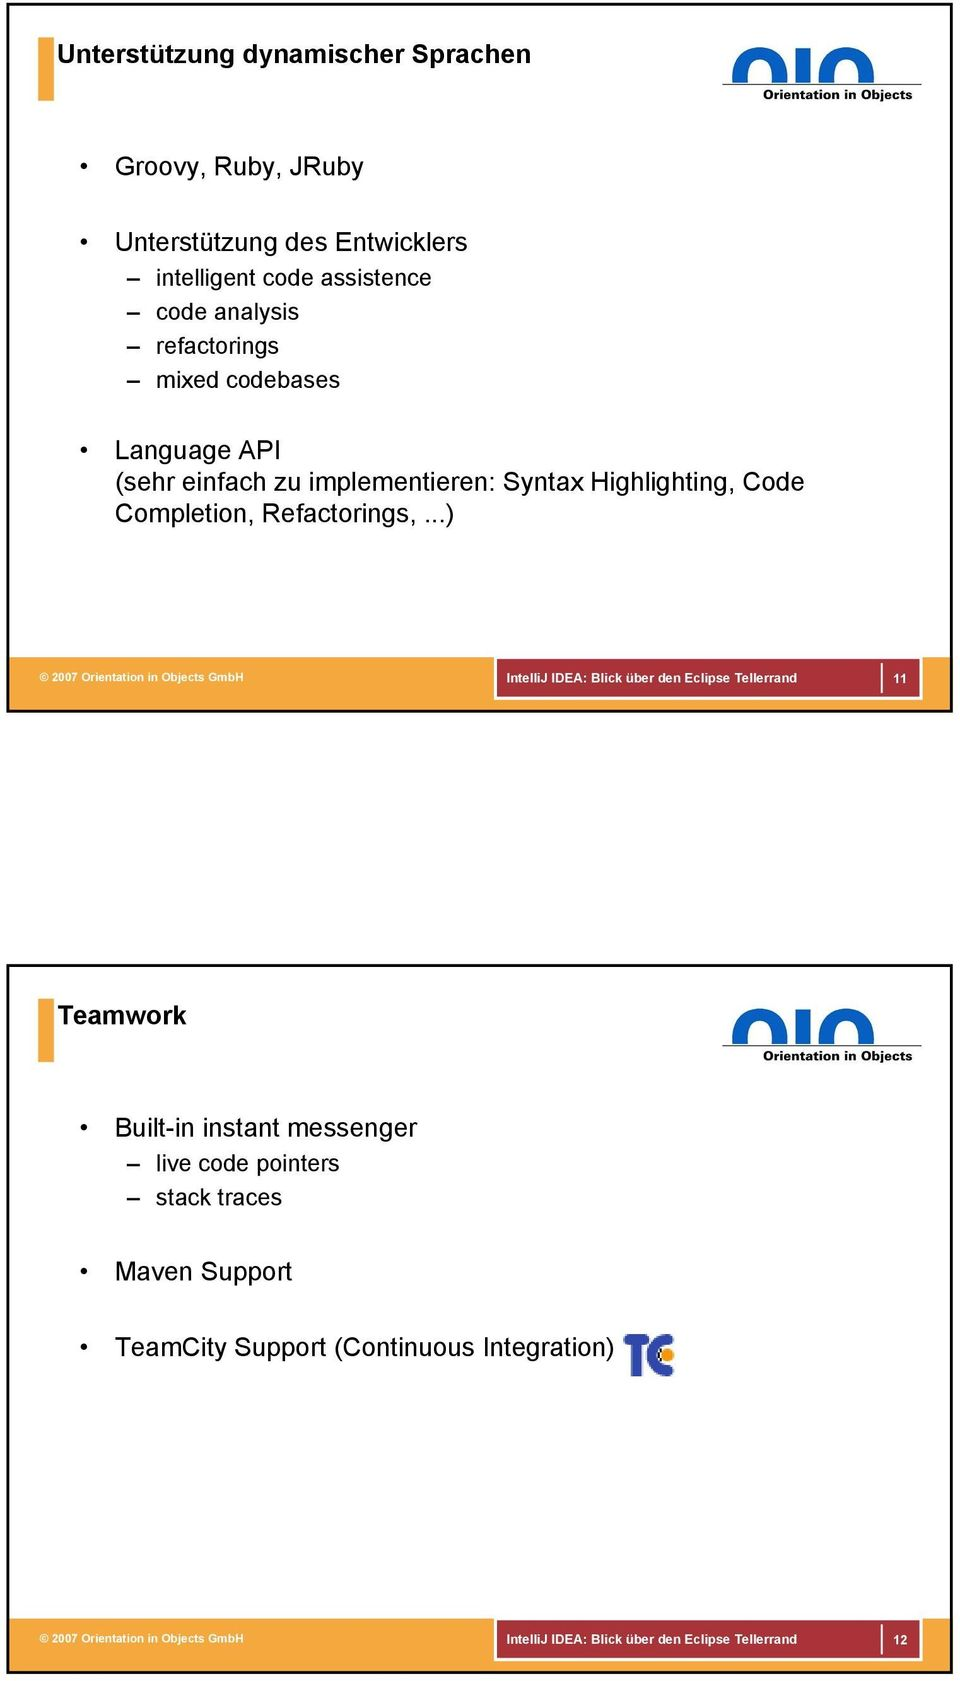 ..) 2007 Orientation in Objects GmbH IntelliJ IDEA: Blick über den Eclipse Tellerrand 11 Teamwork Built-in instant messenger live code